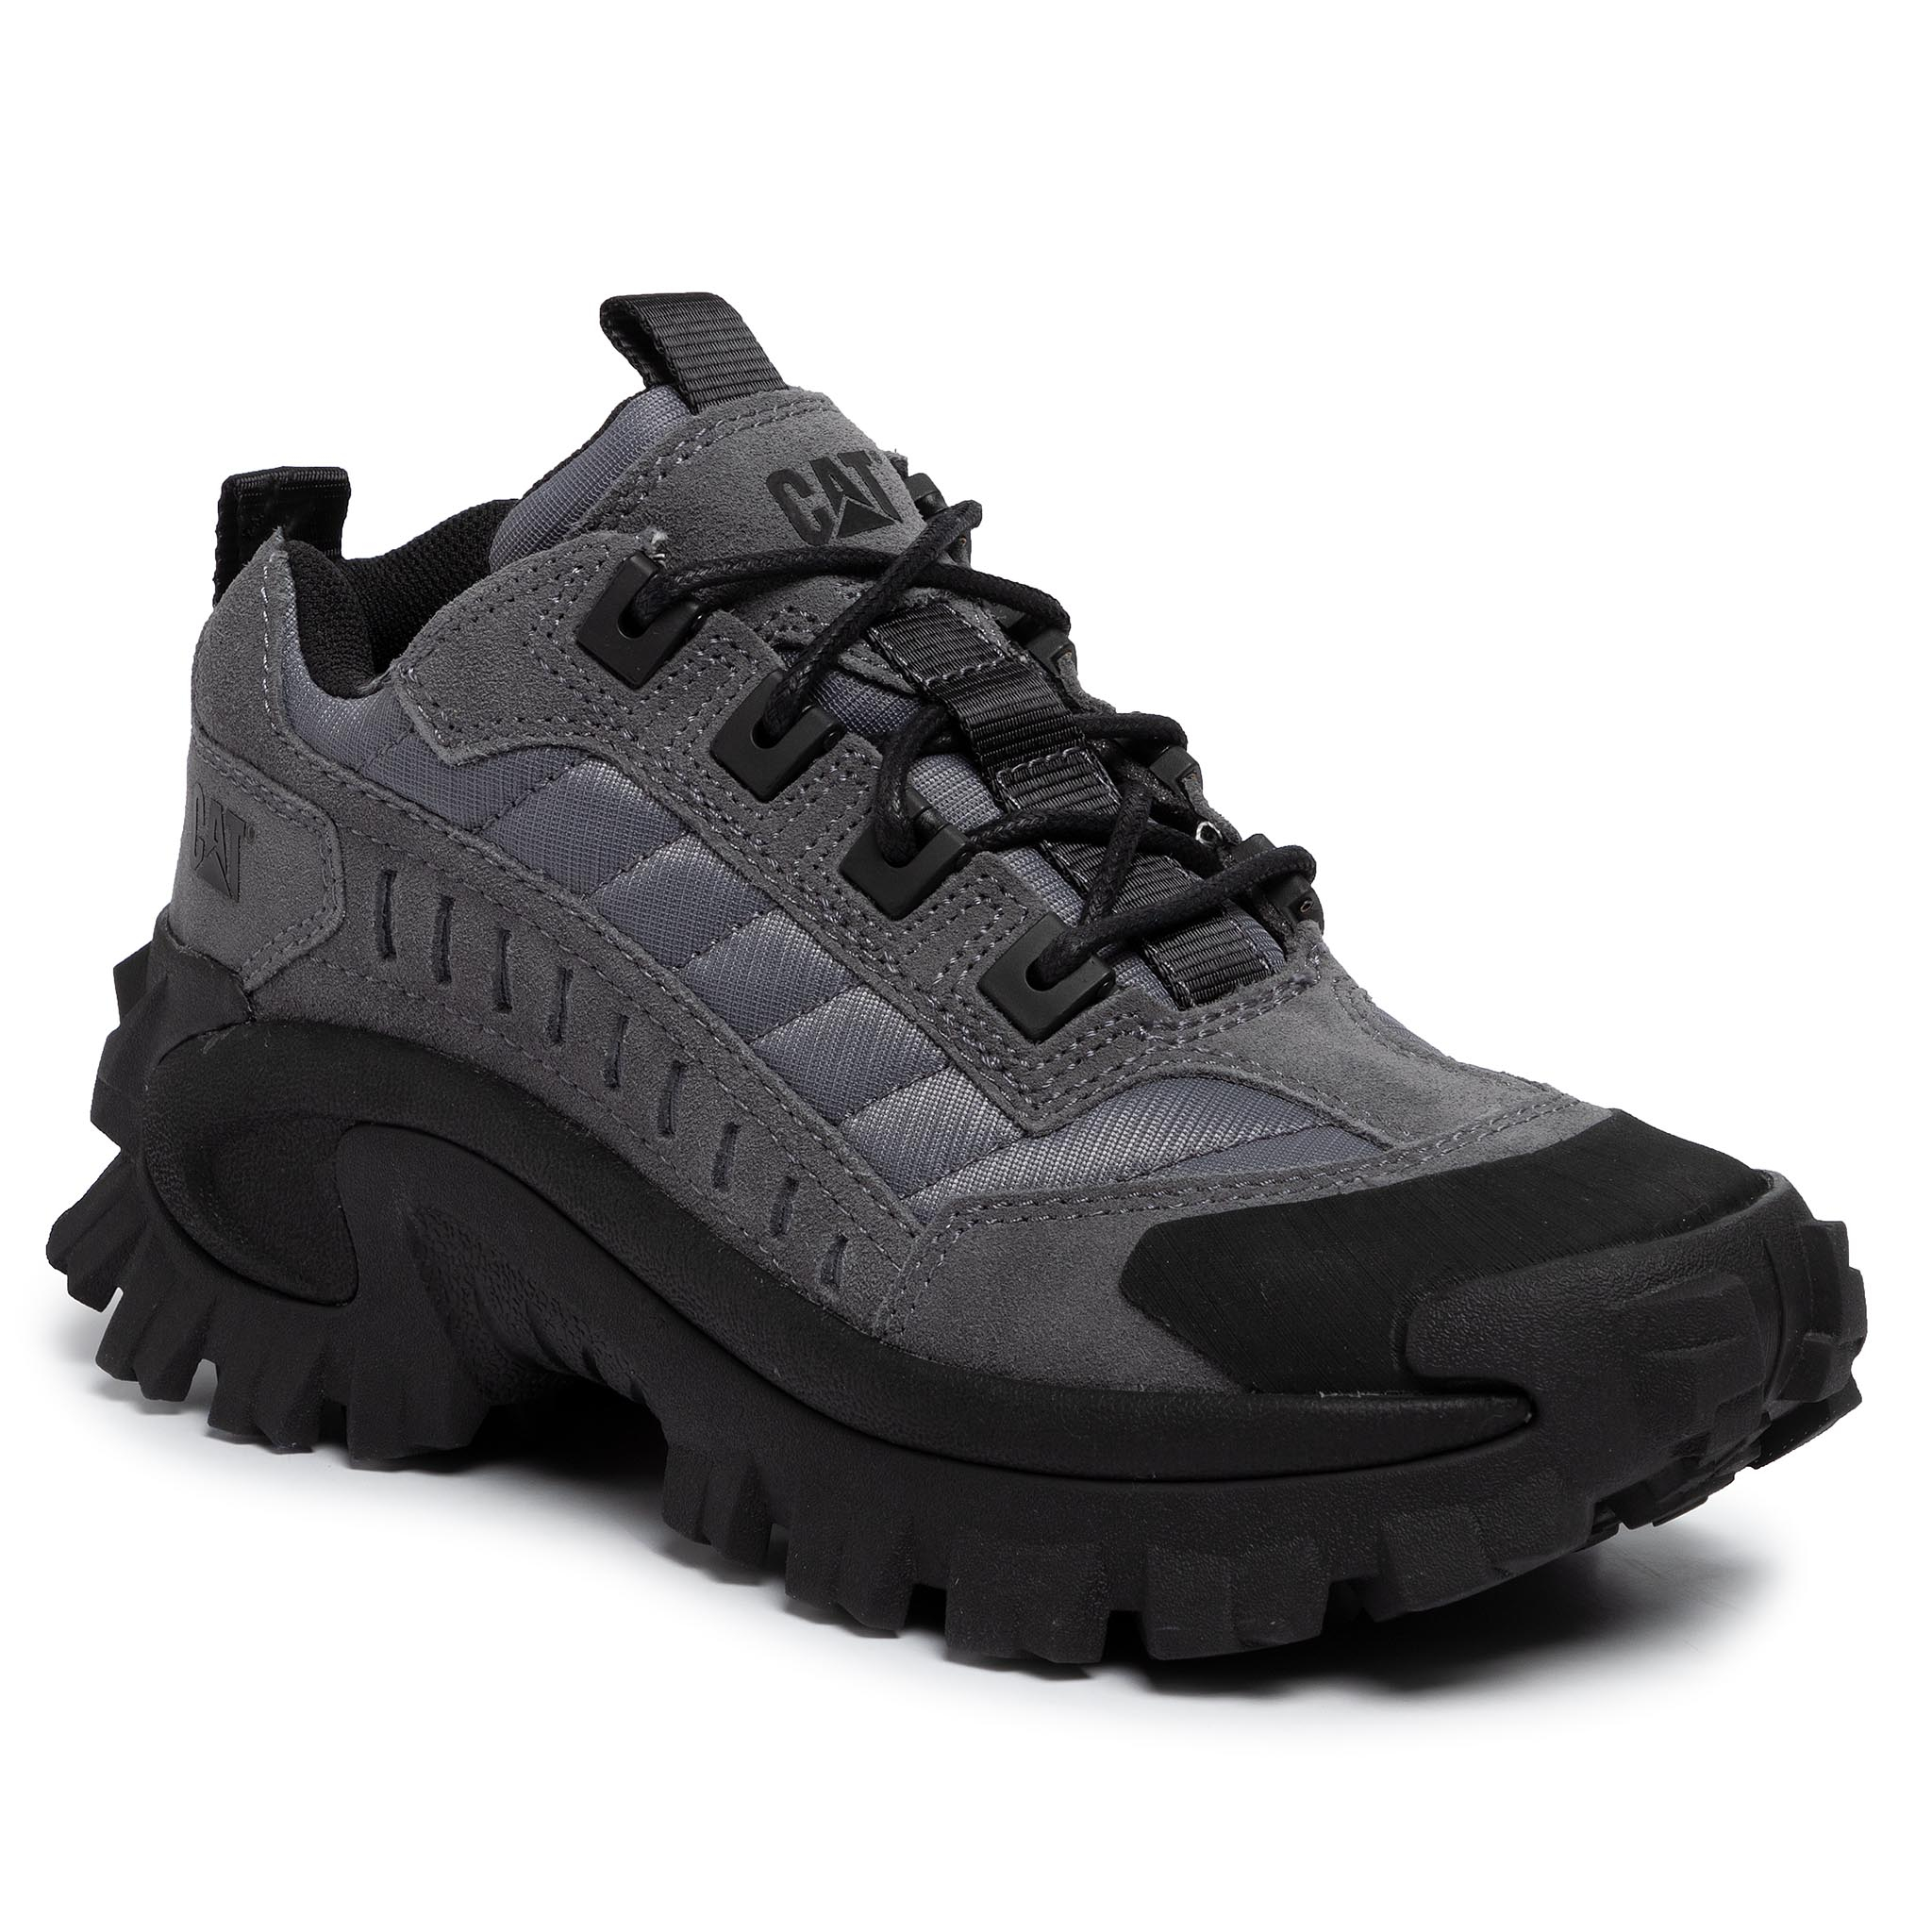 Sneakers CATERPILLAR - Intruder P723921 Smoked Pearl